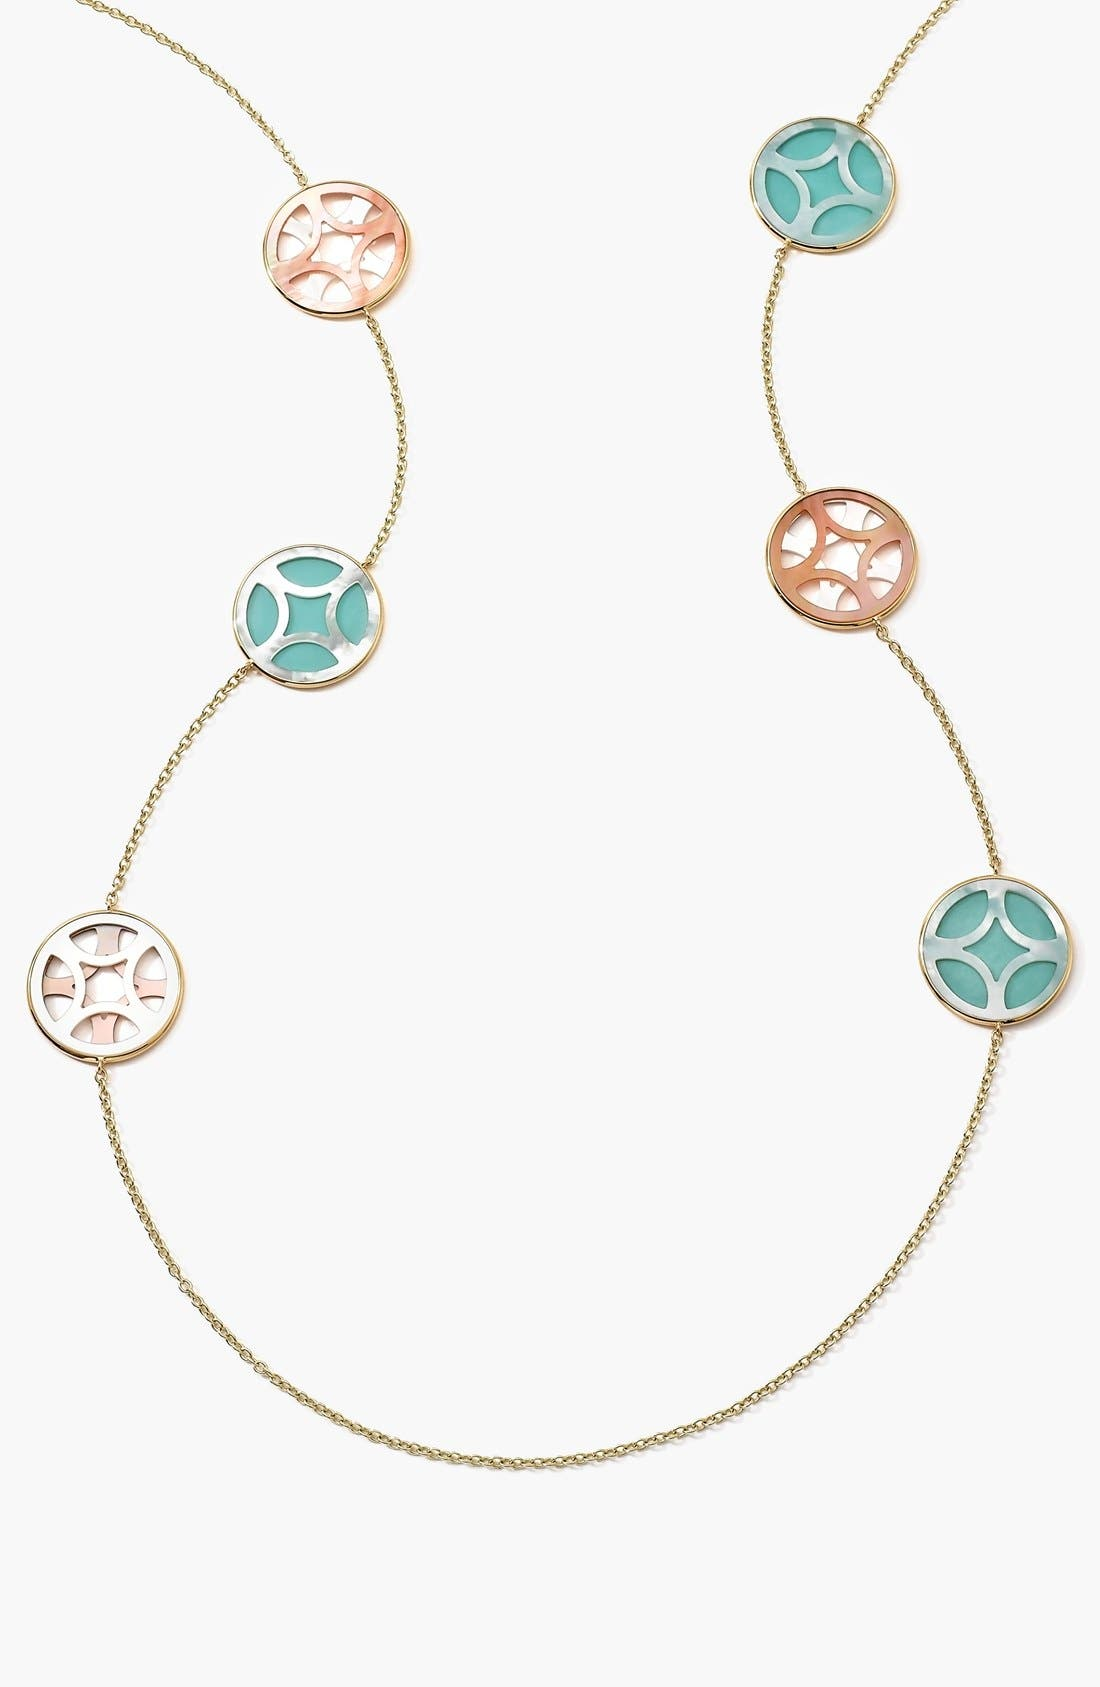 Alternate Image 1 Selected - Ippolita 'Polished Rock Candy' 18k Gold Long Station Necklace